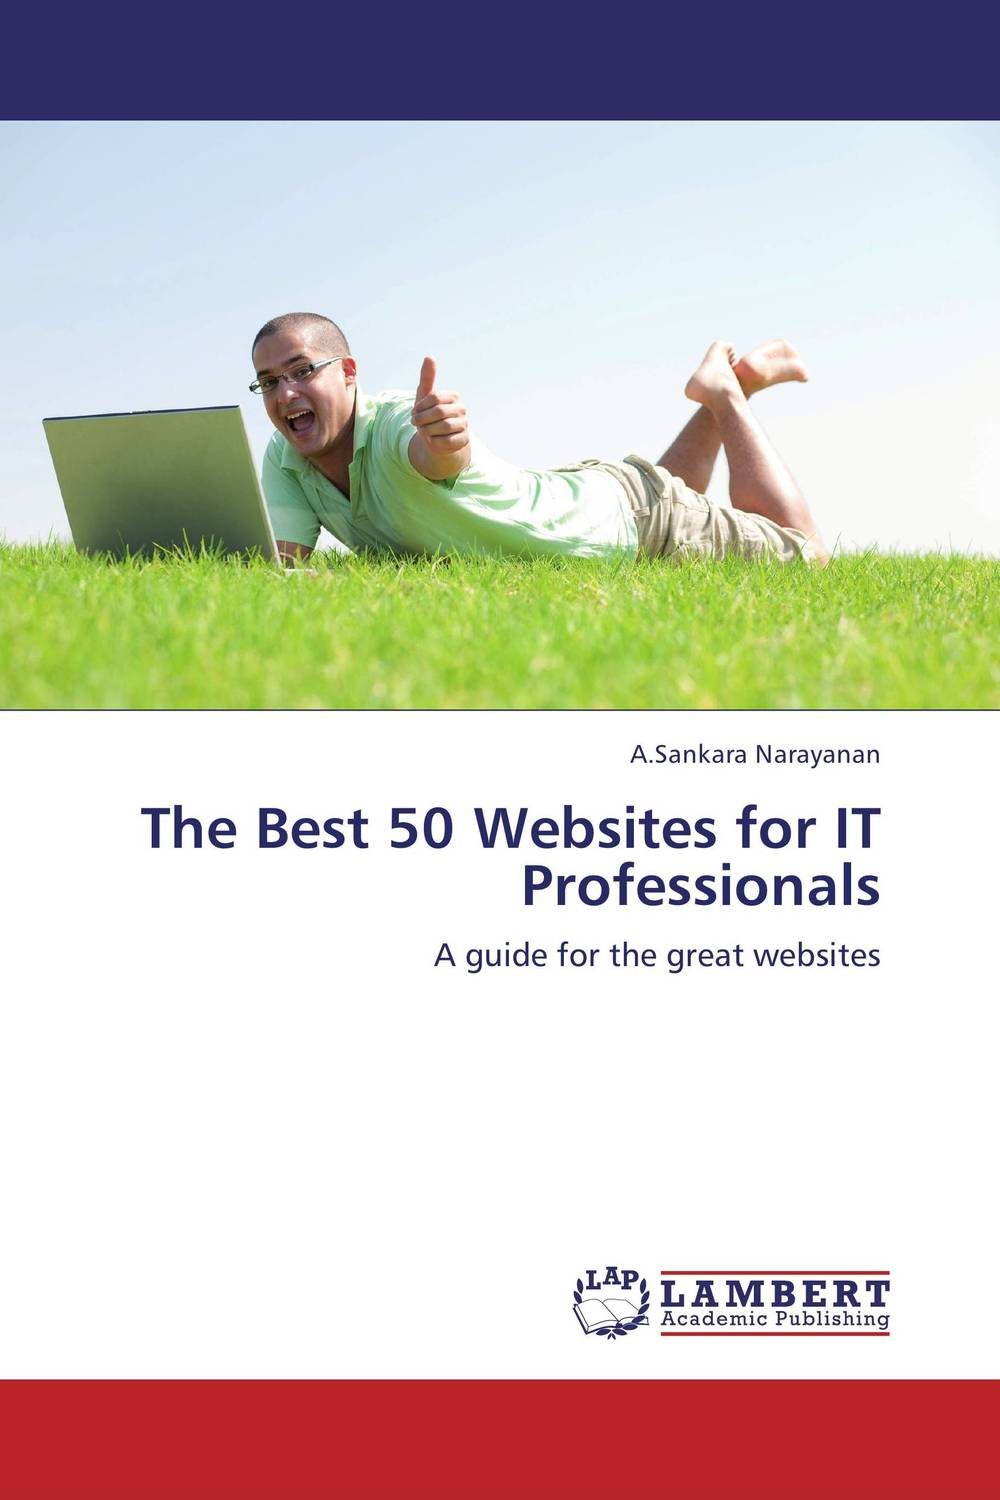 The Best 50 Websites for IT Professionals